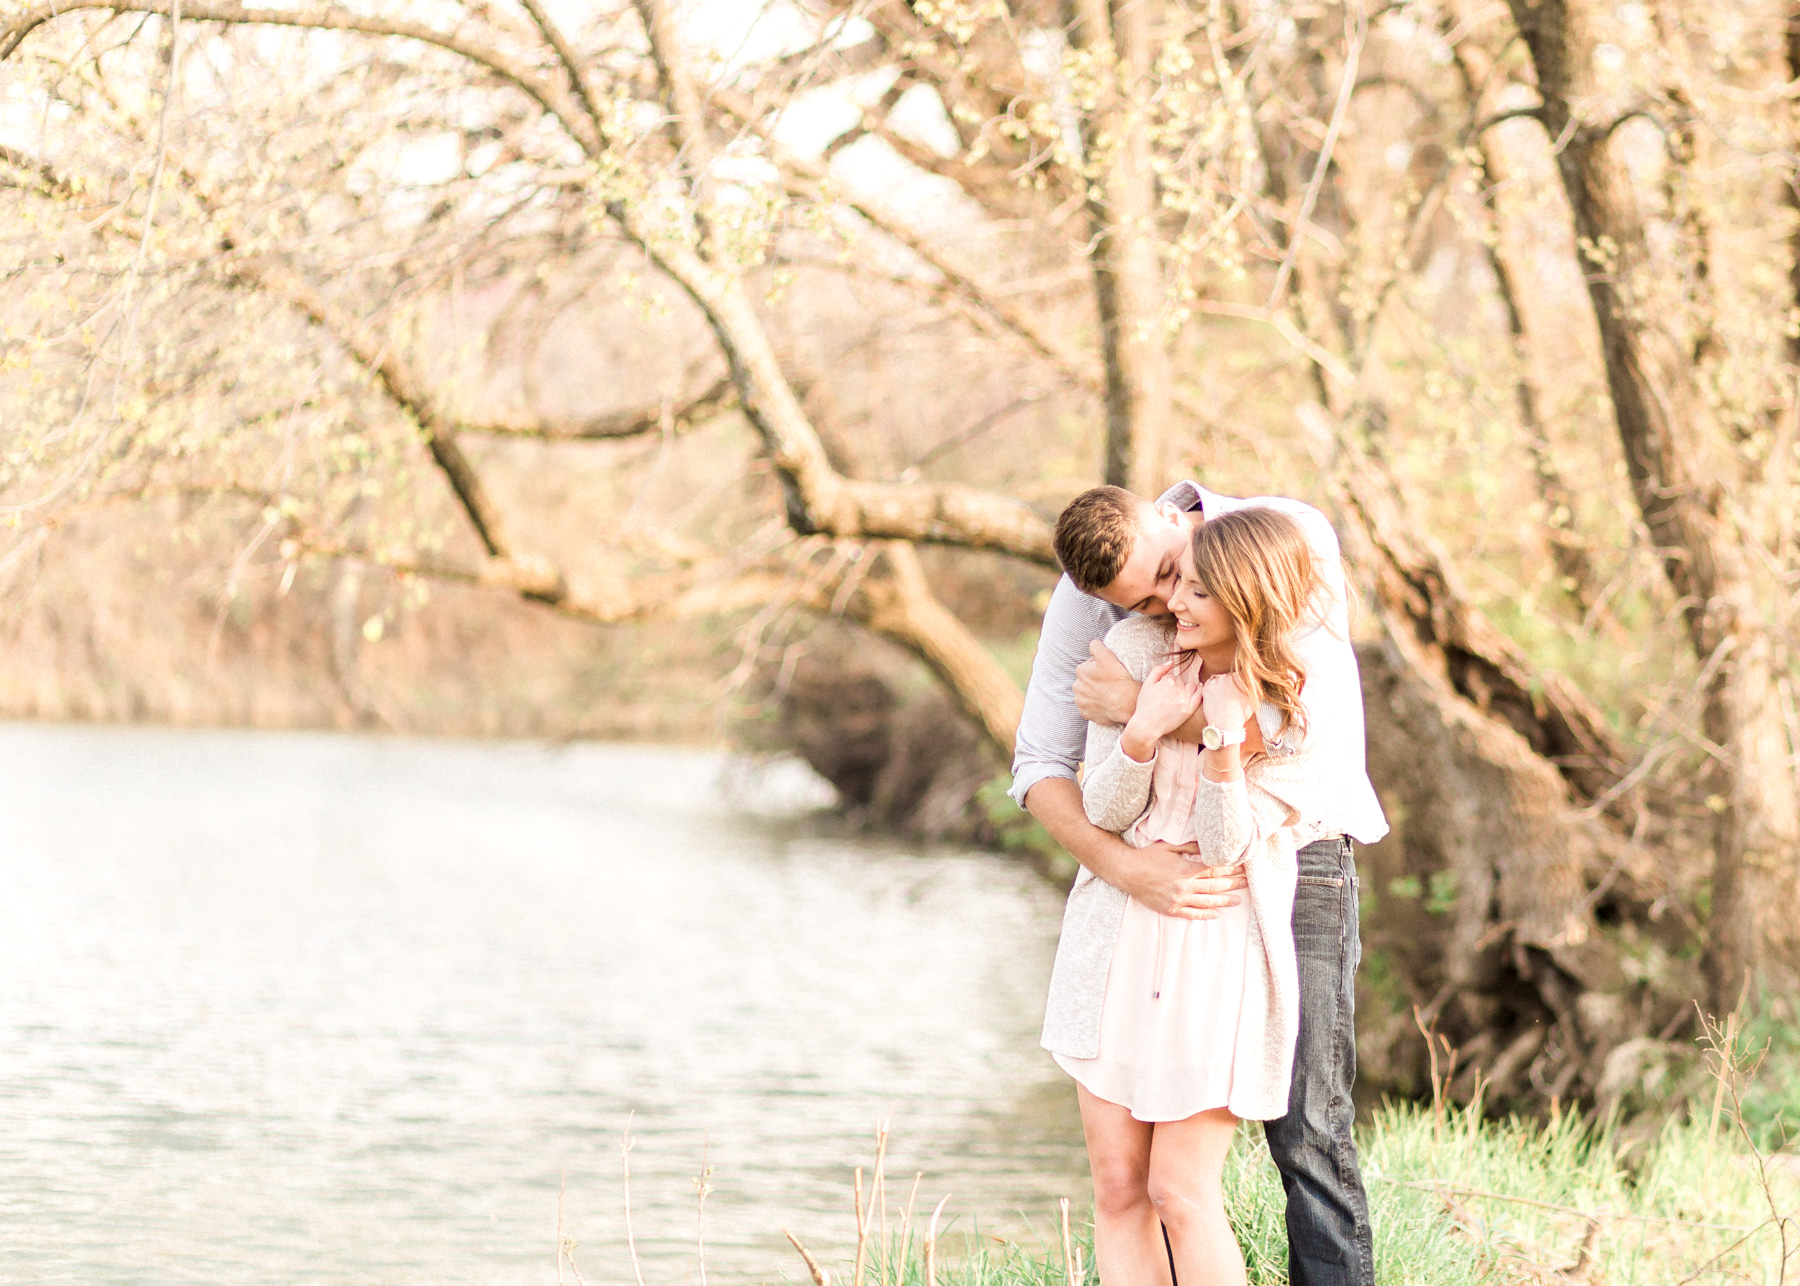 abby and zach hugging by water